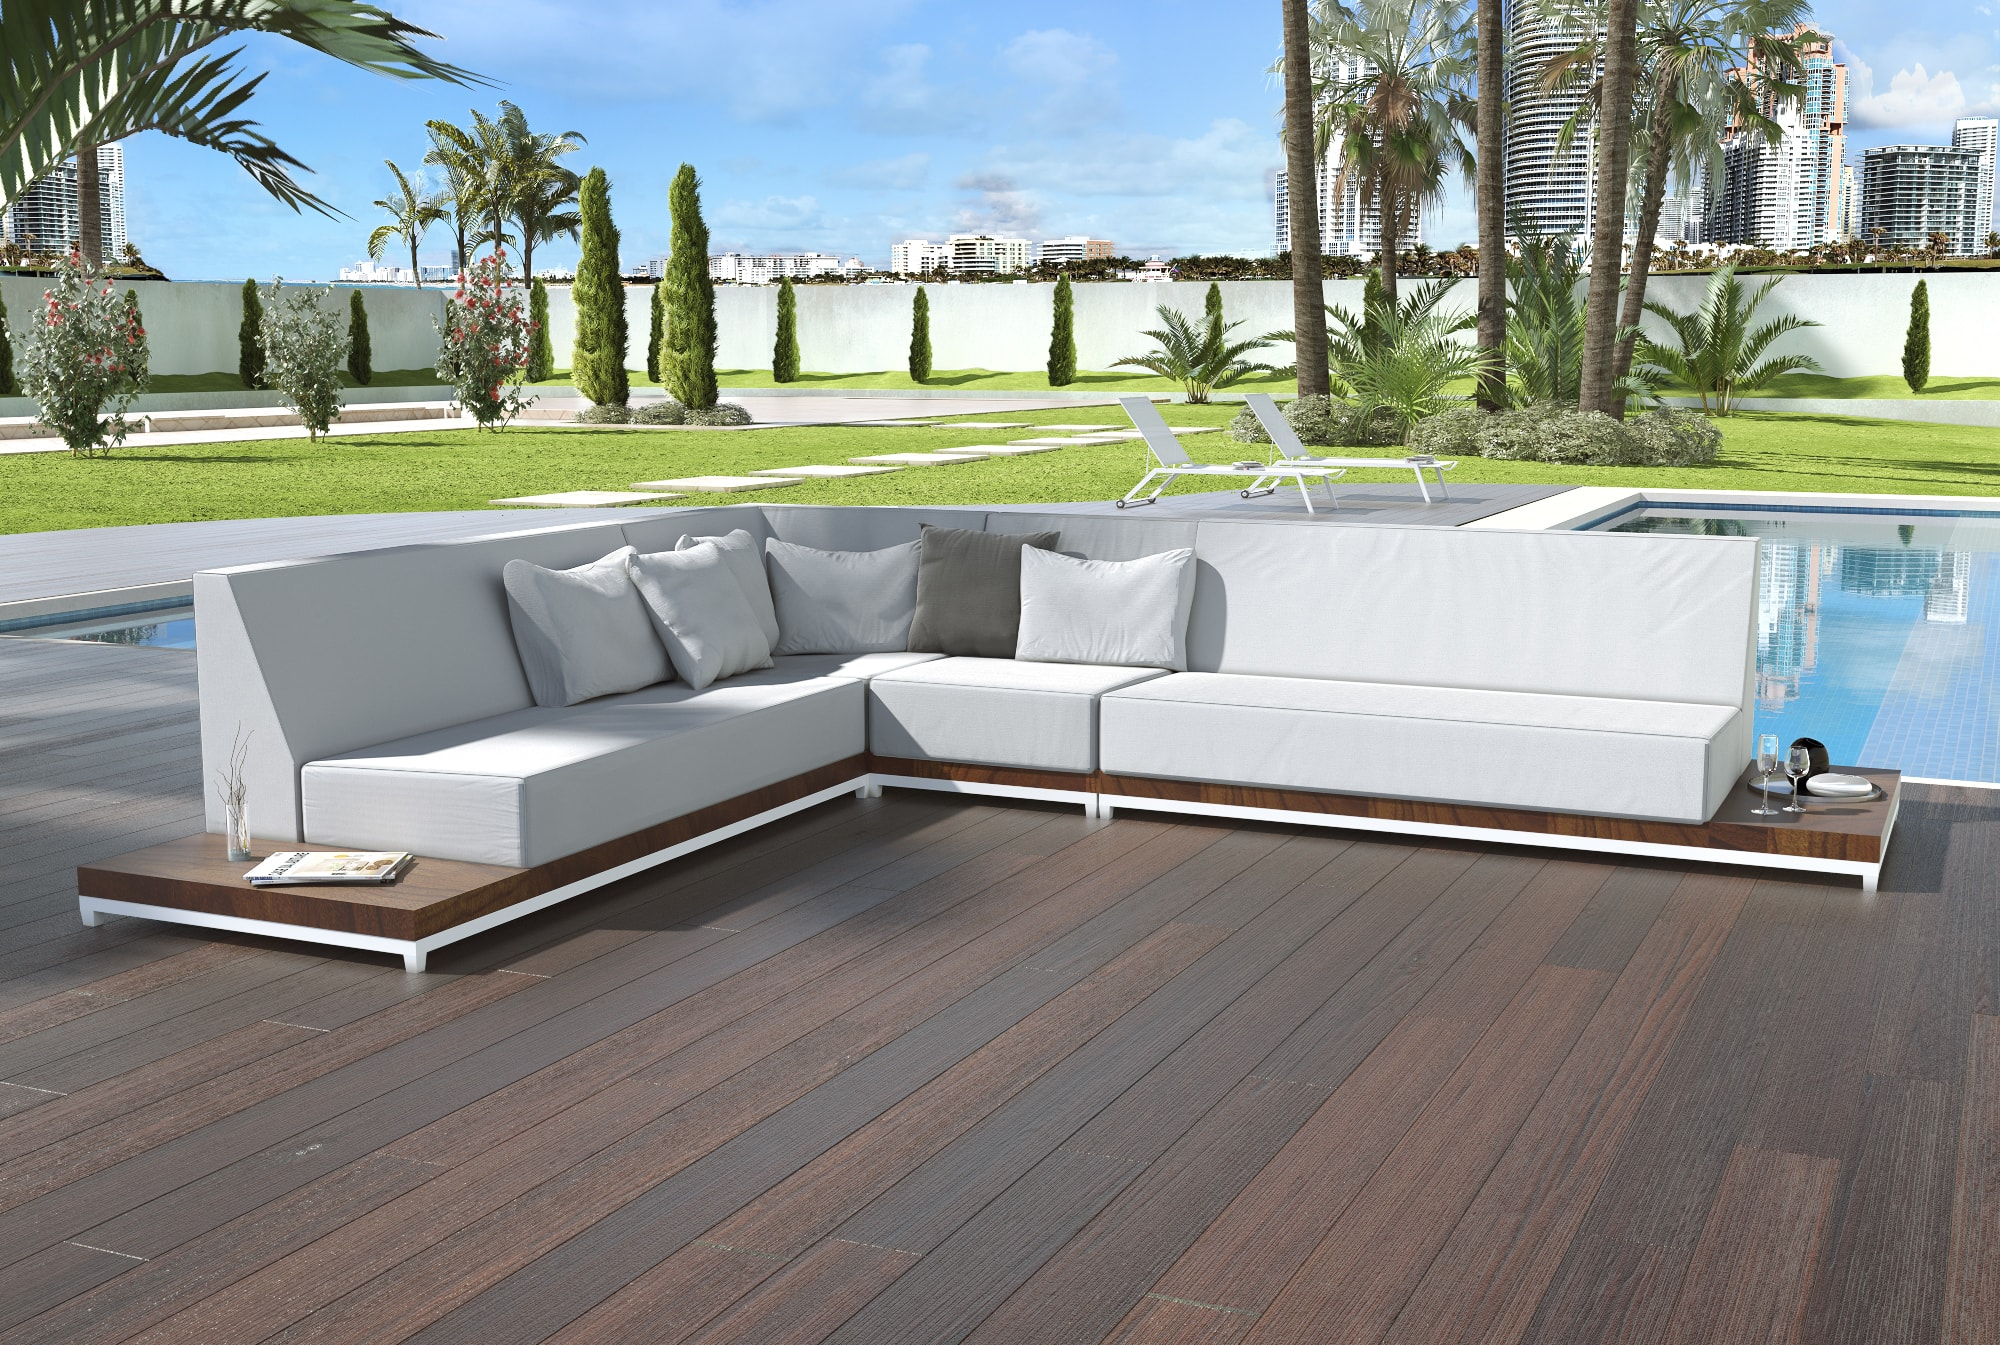 Lavish callisto outdoor modern sofa with built in side tables for Sofas exterior polietileno